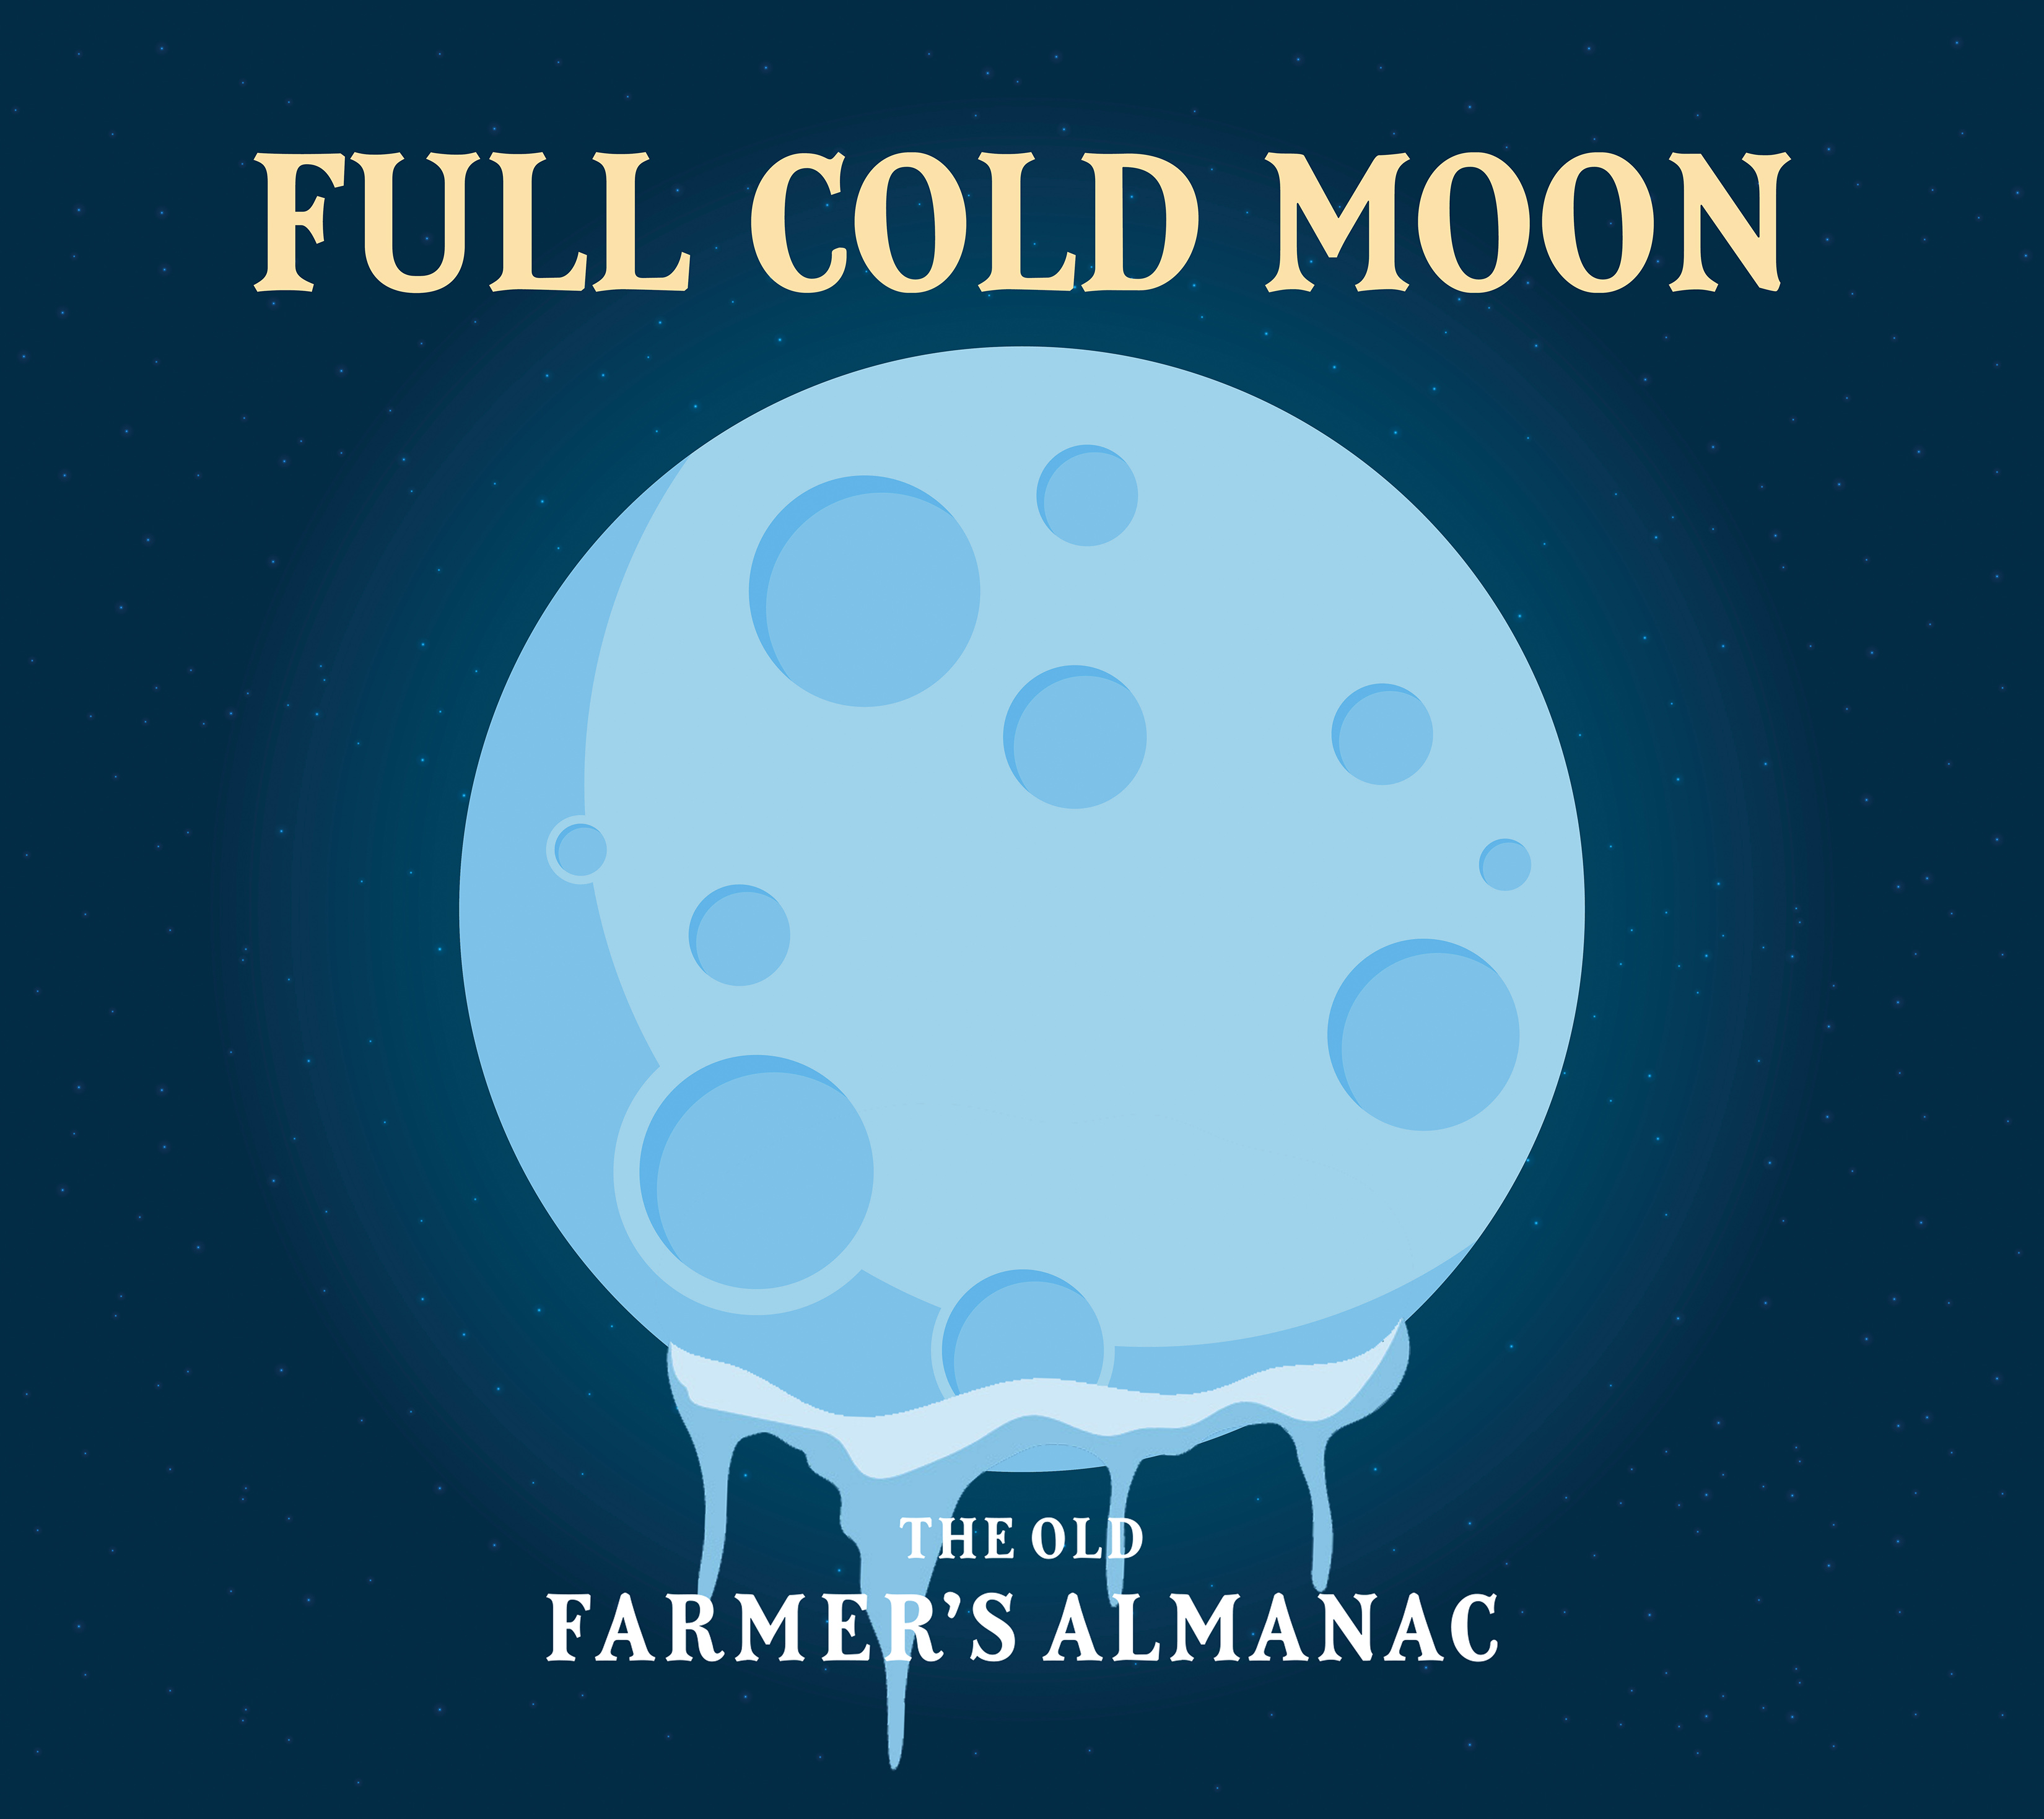 Full Moon For December 2019 The Full Cold Moon The Old